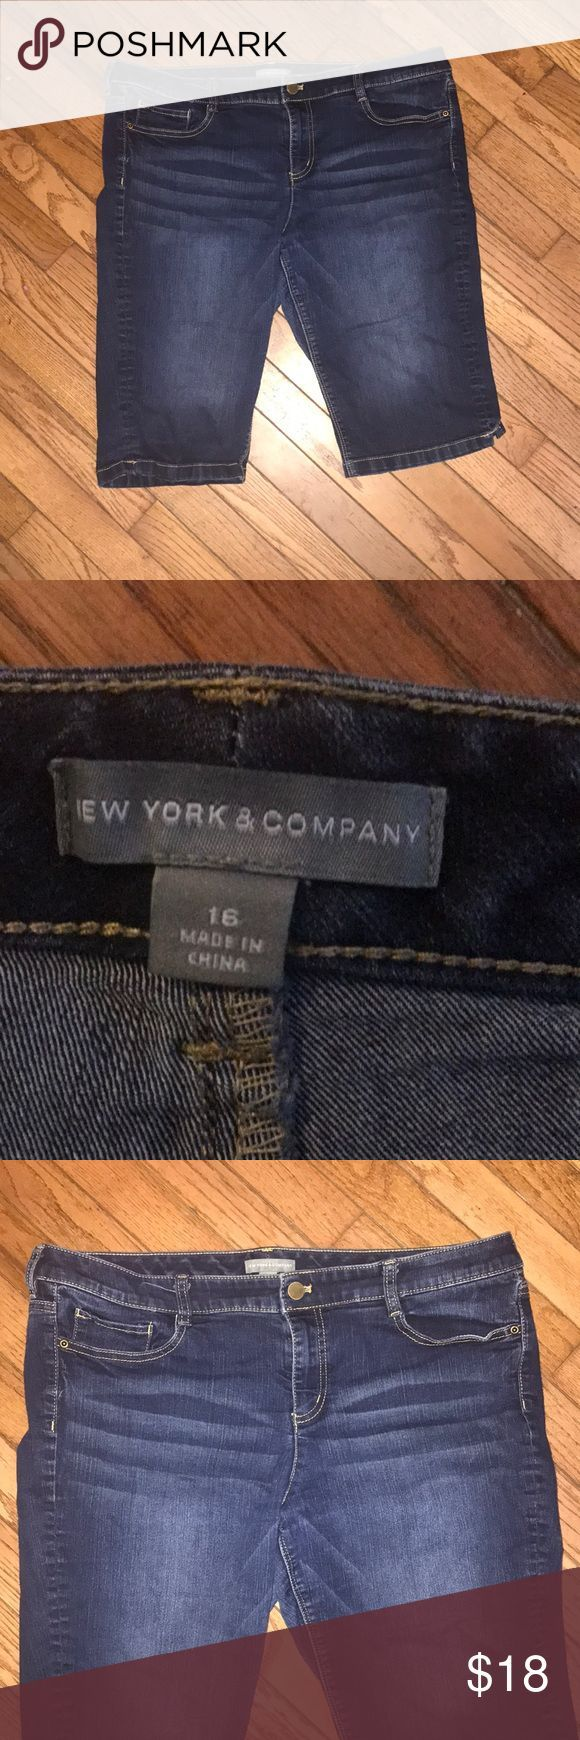 New York and Company capris size 16 New York and Company capris/Bermuda shorts s…